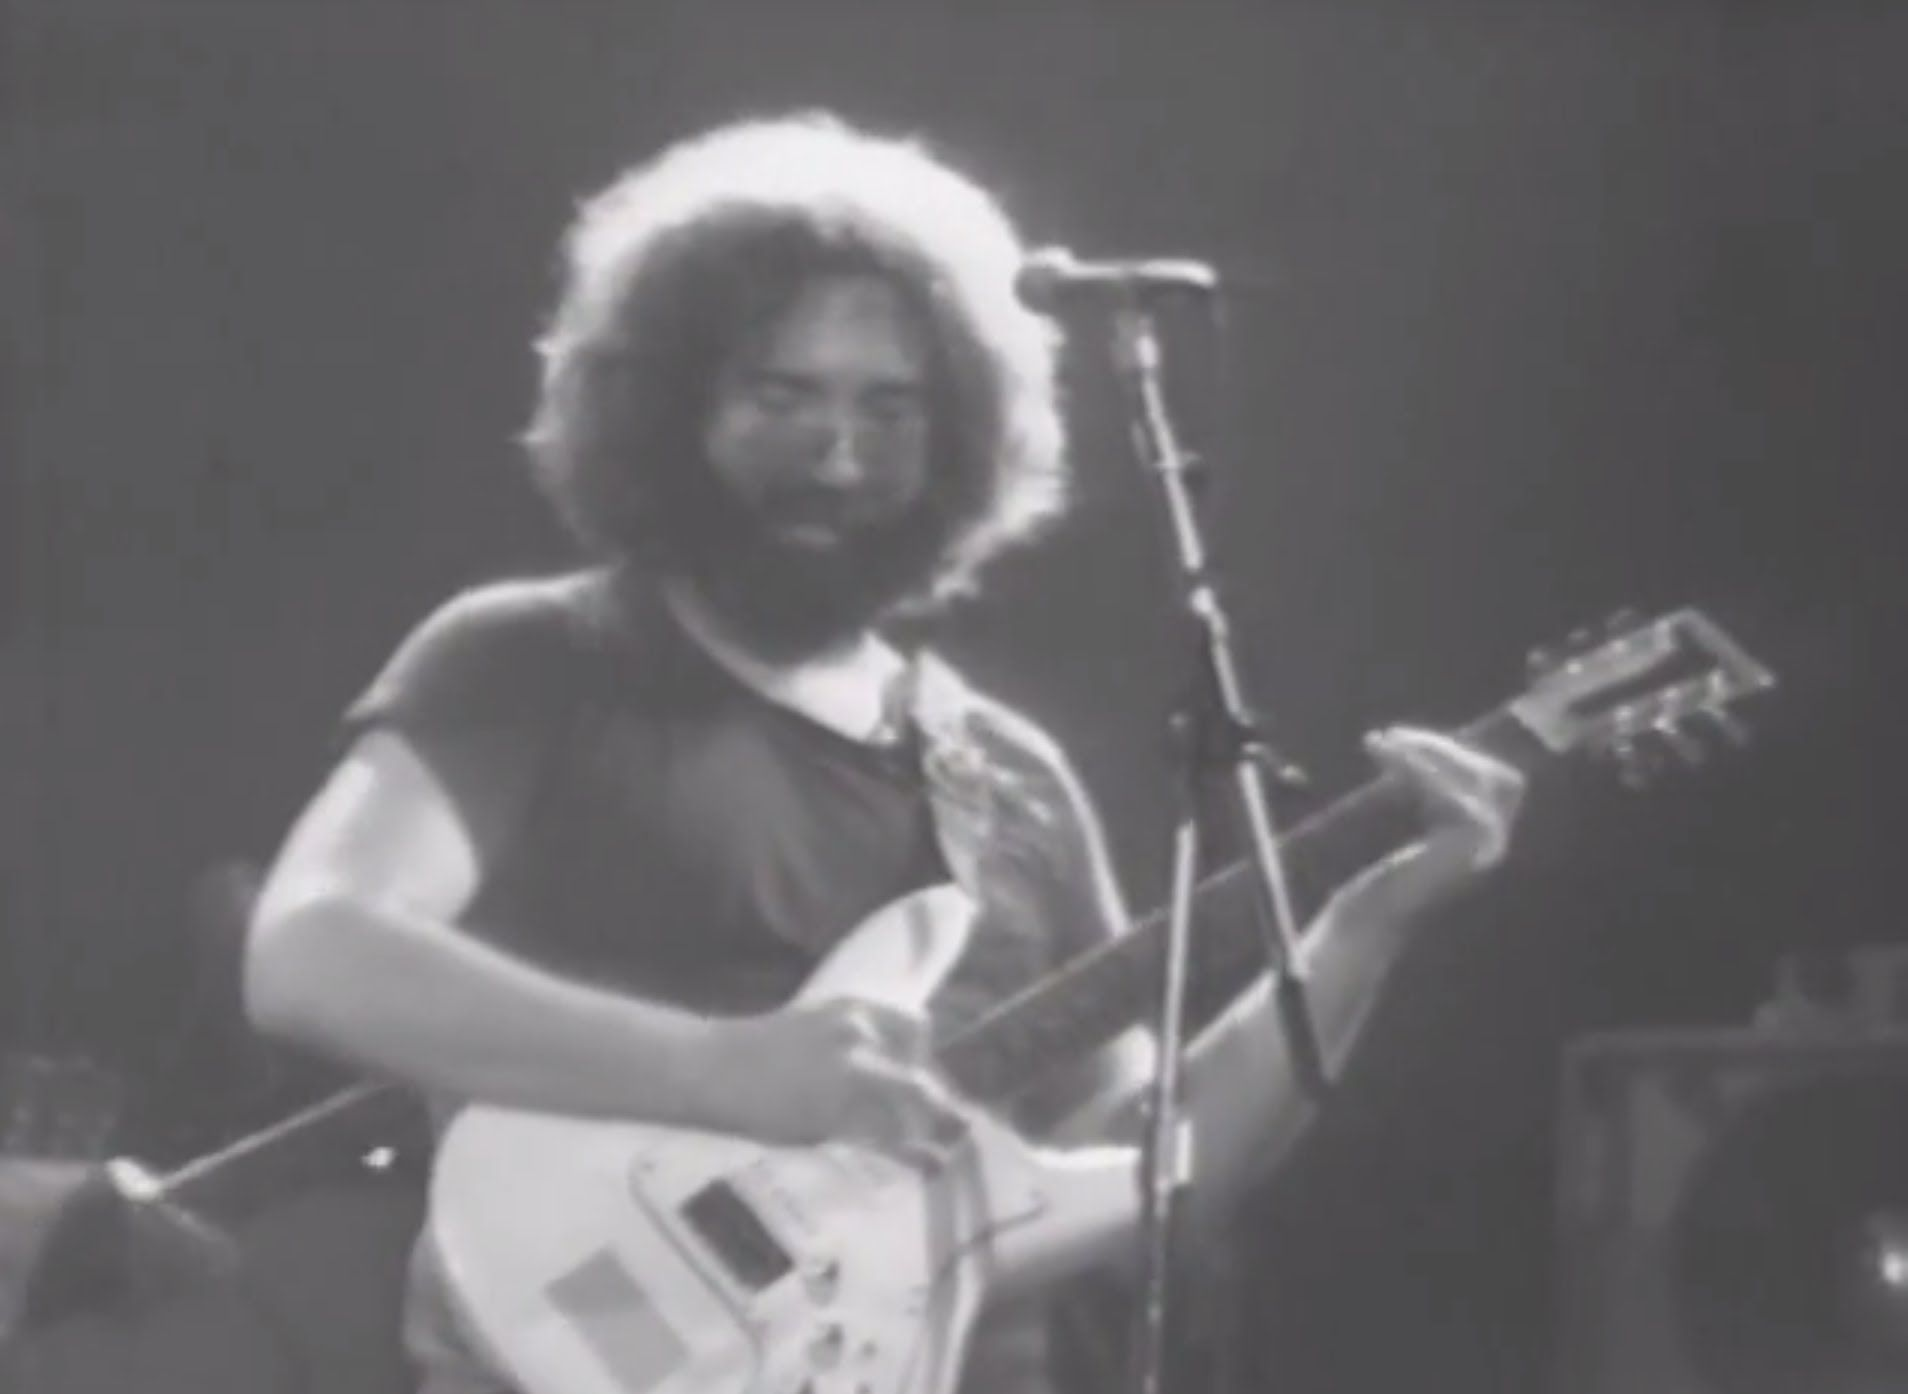 20 years ago today we lost #JerryGarcia #BeKind  Full Concert - 07/09/77 Late - Convention Hall (OFFI...